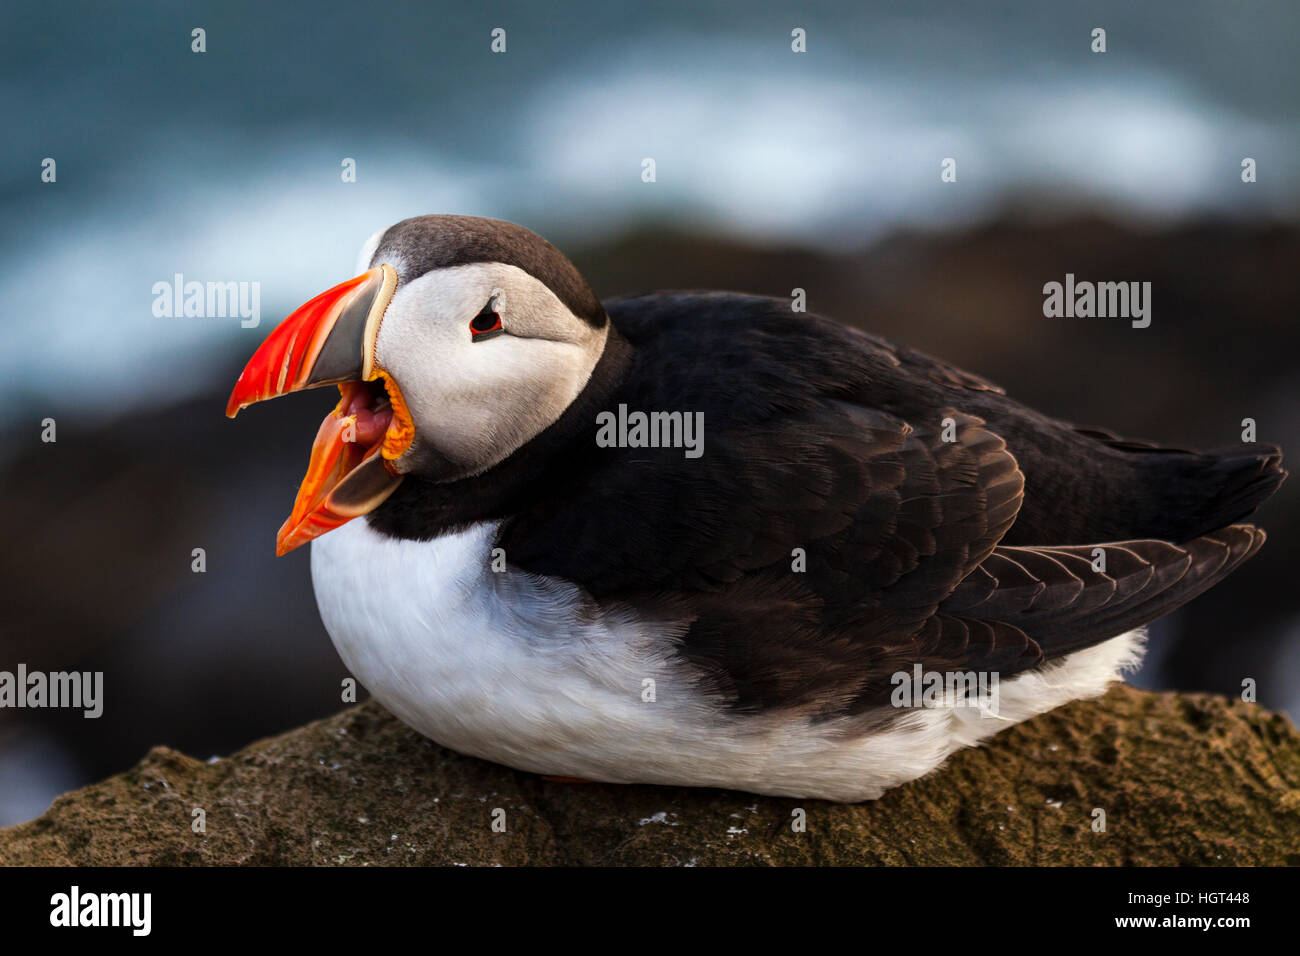 Puffin (Fratercula arctica), open-mouthed sitting on rocks, cliffs at Látrabjarg, Peninsula Westfjords, Iceland - Stock Image